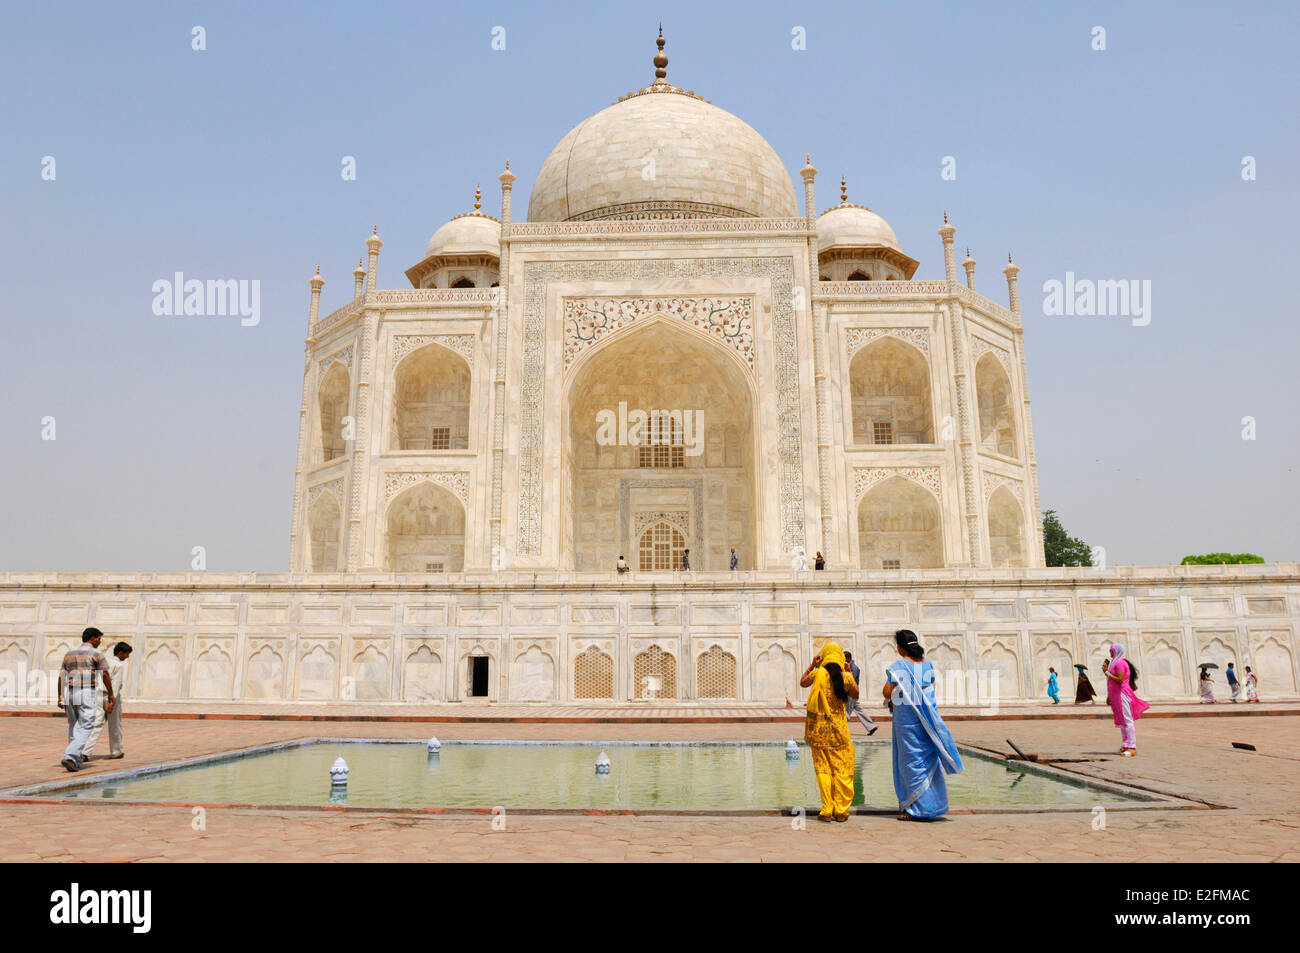 India Uttar Pradesh State Agra The Taj Mahal listed as World Heritage by UNESCO visitors from behind around a basin - Stock Image